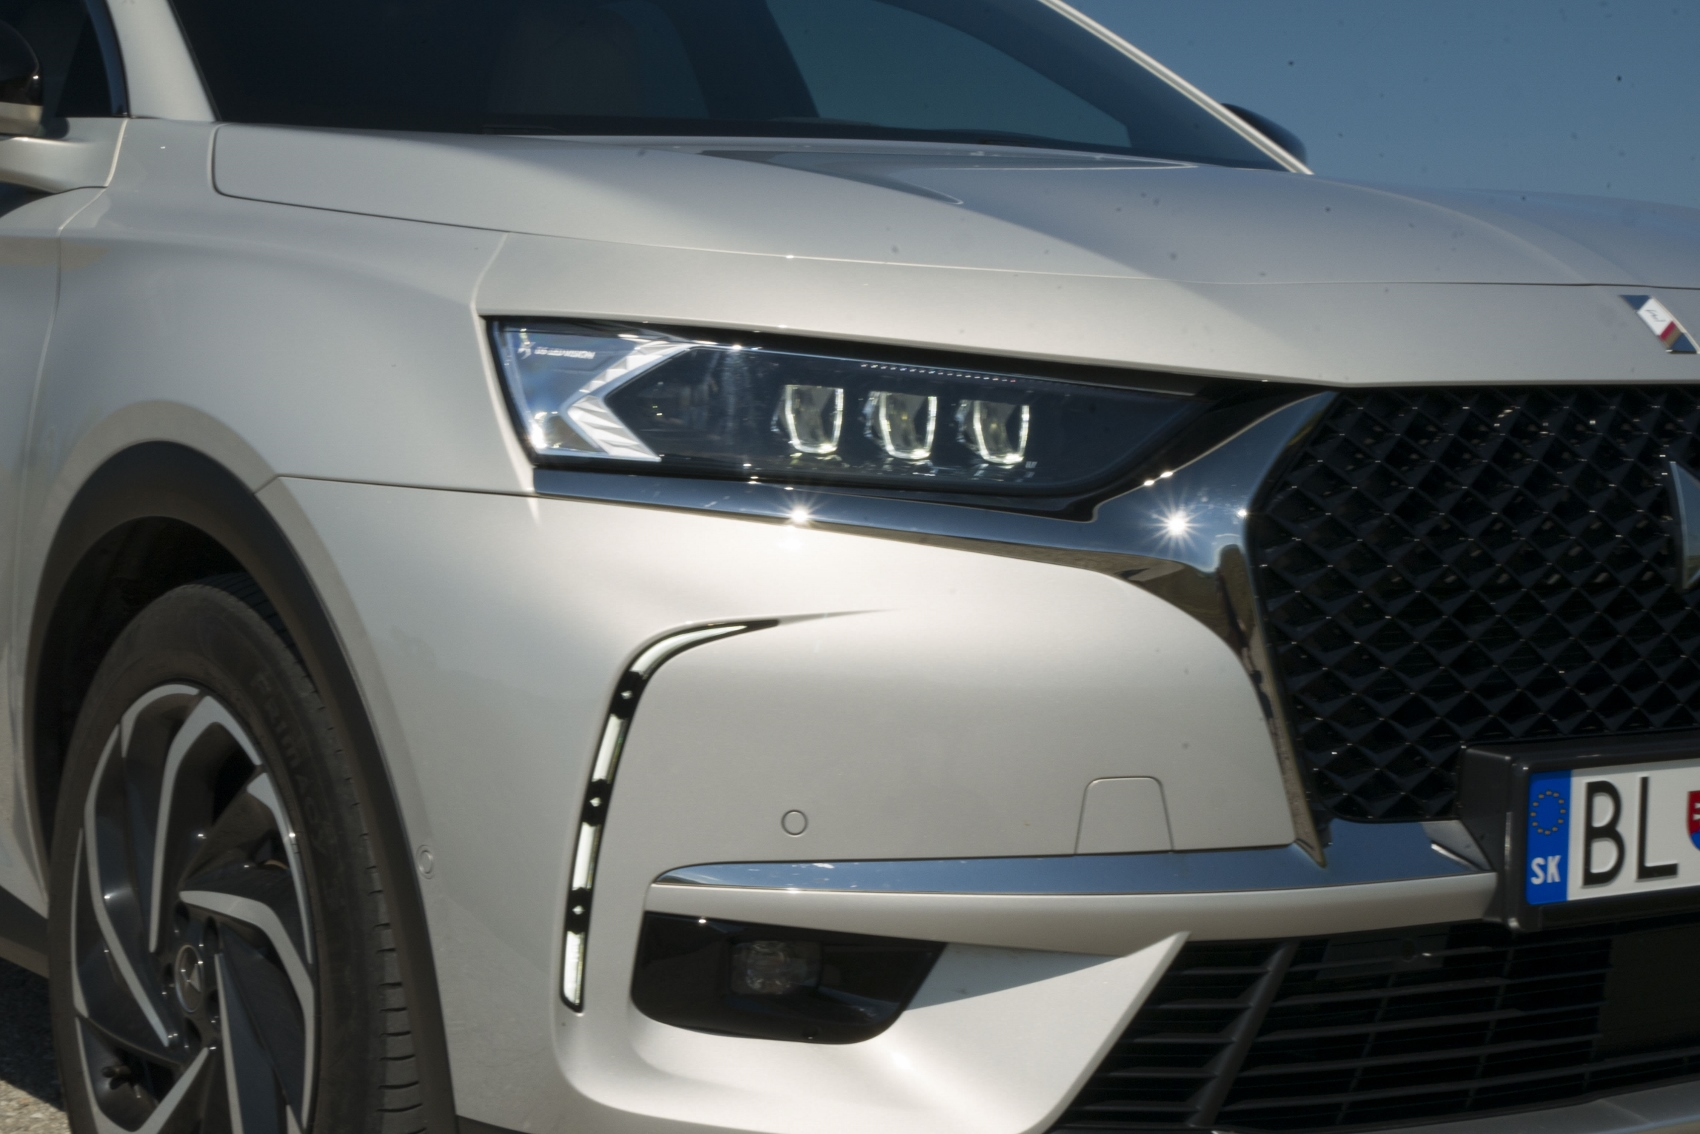 DS 7 Crossback (6)